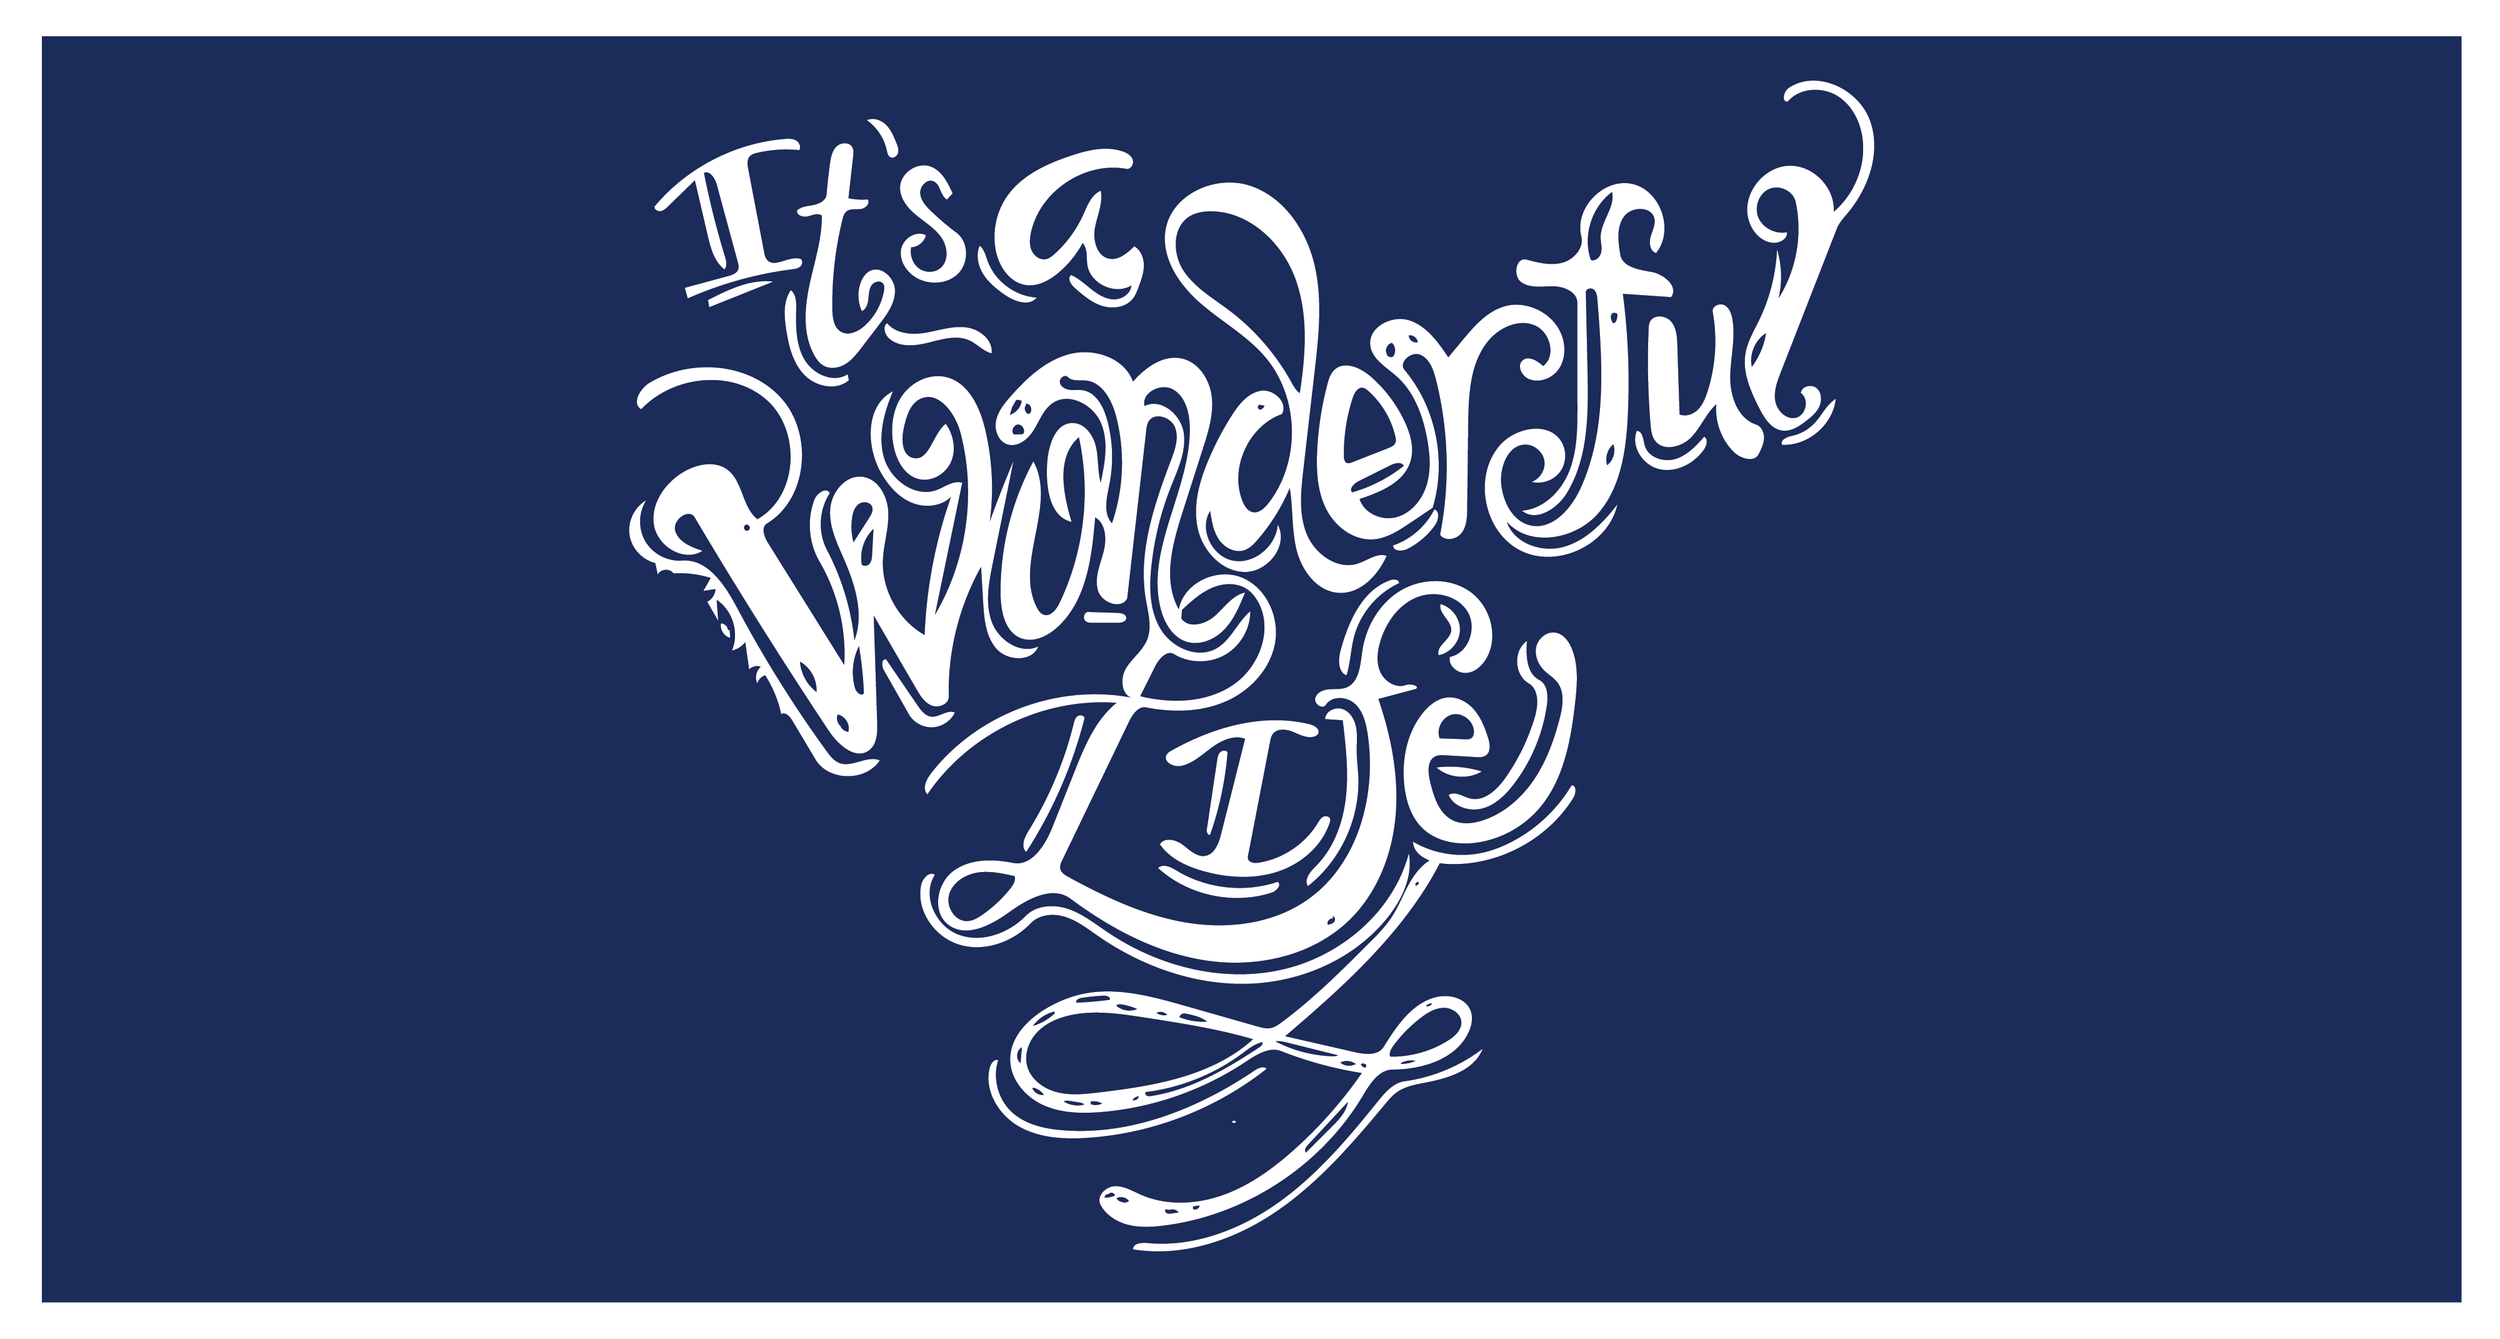 Wonderful-sermon-series-05.png